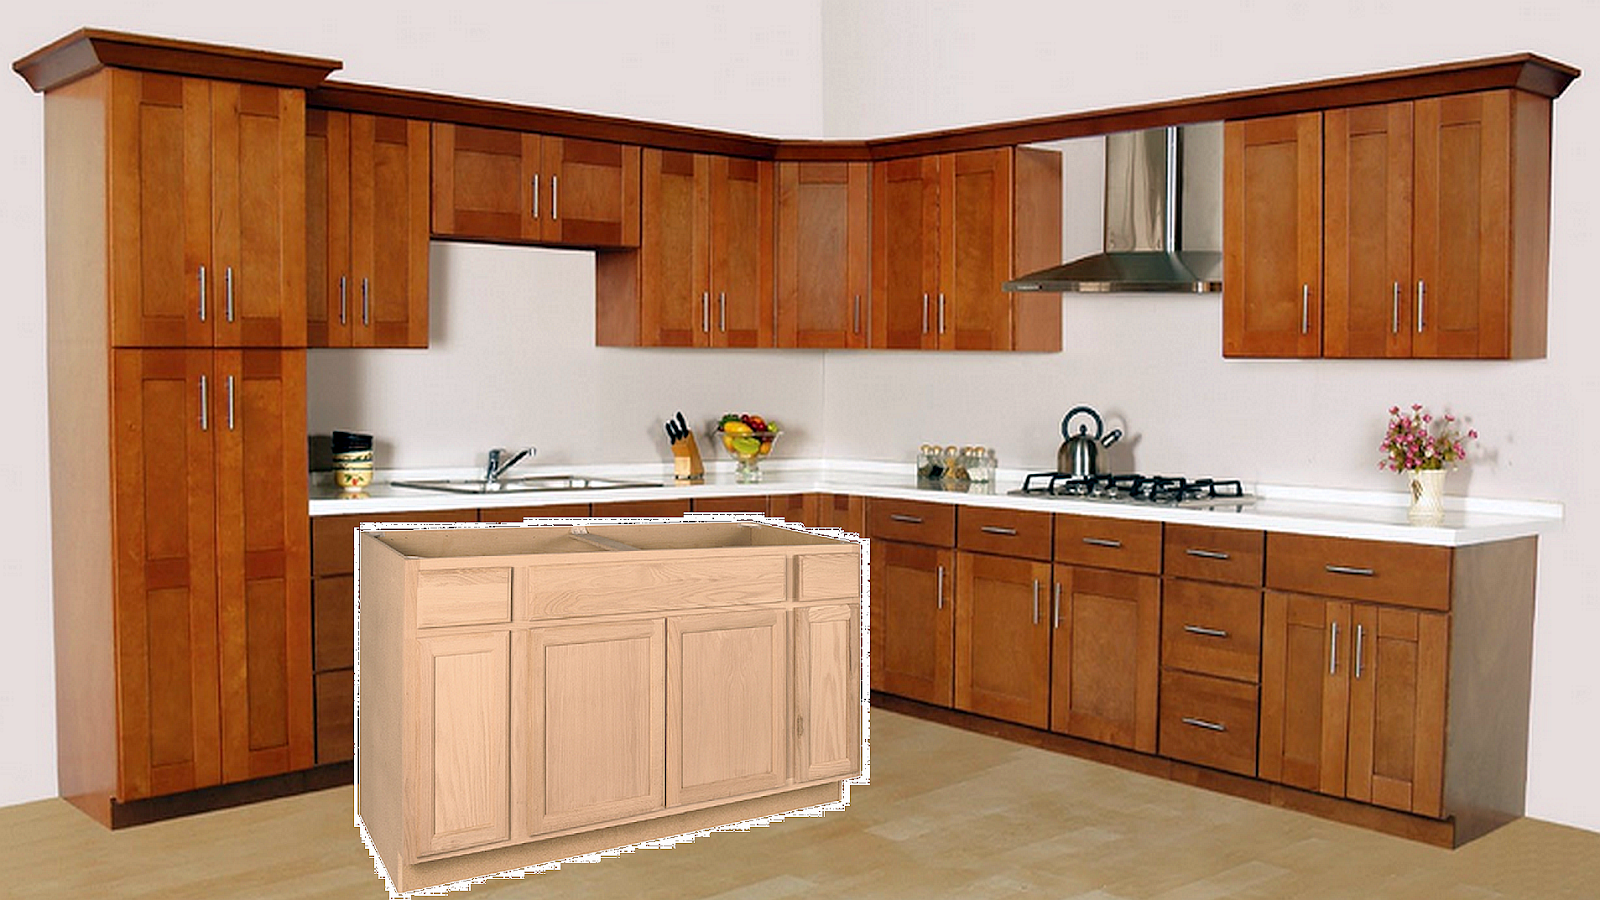 Staining Unfinished Kitchen Cabinets How To Finish Unfinished Kitchen Cabinets